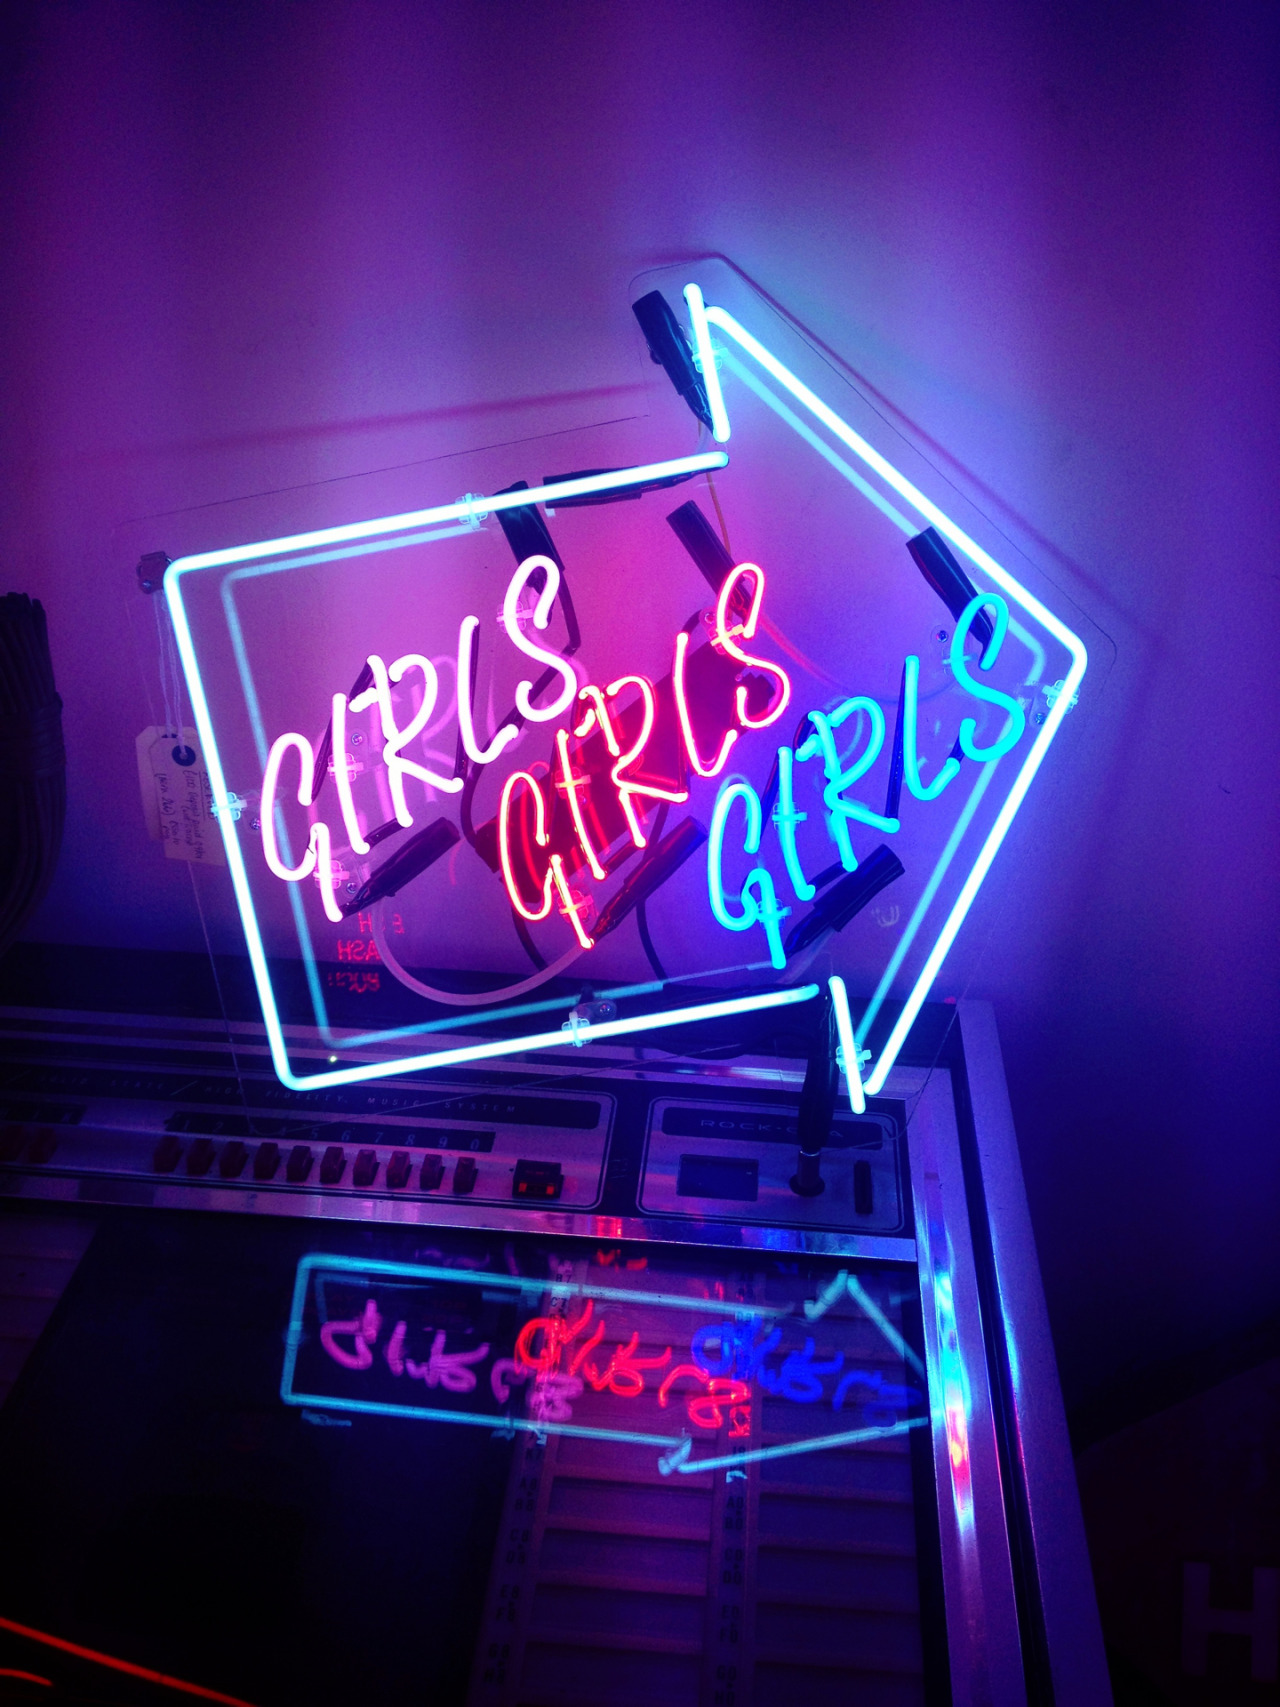 100 creative neon signs ads. Black Bedroom Furniture Sets. Home Design Ideas